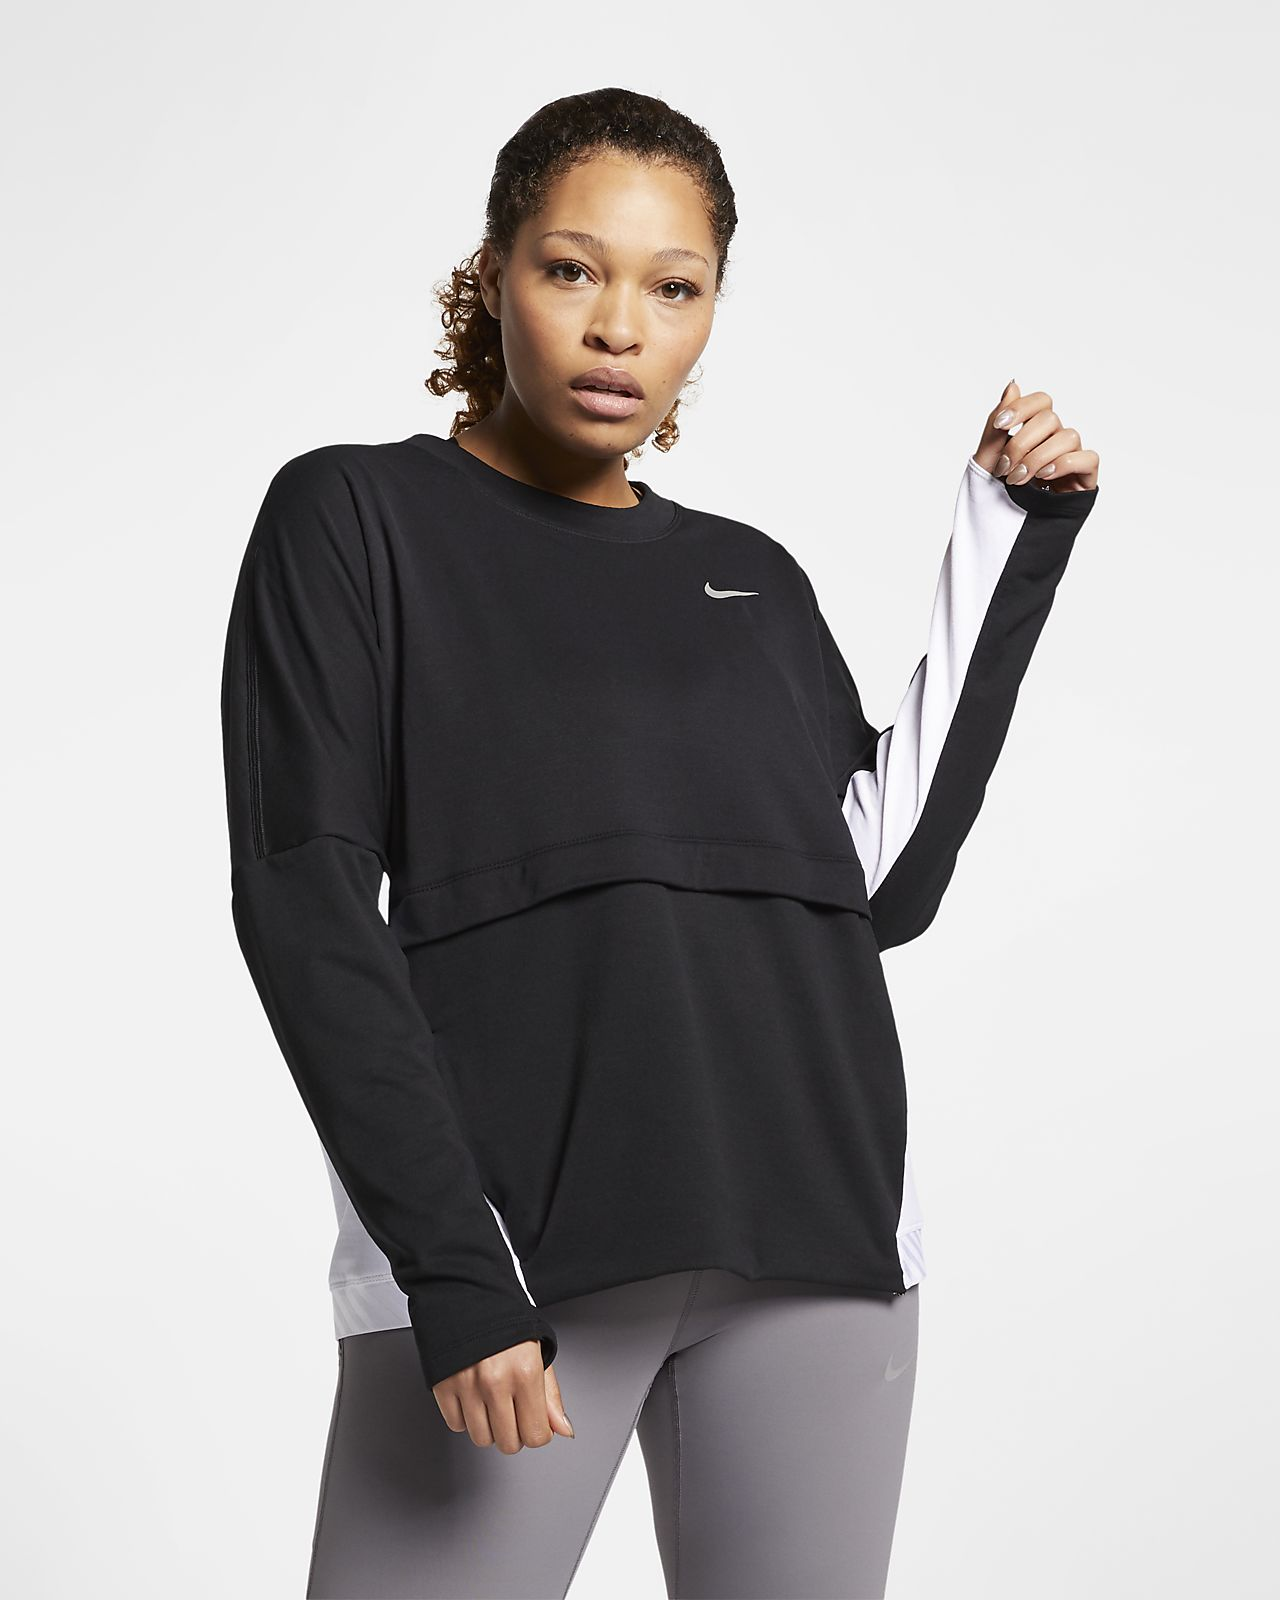 78471340d99 Nike Therma Sphere Women s Running Top (Plus Size). Nike.com